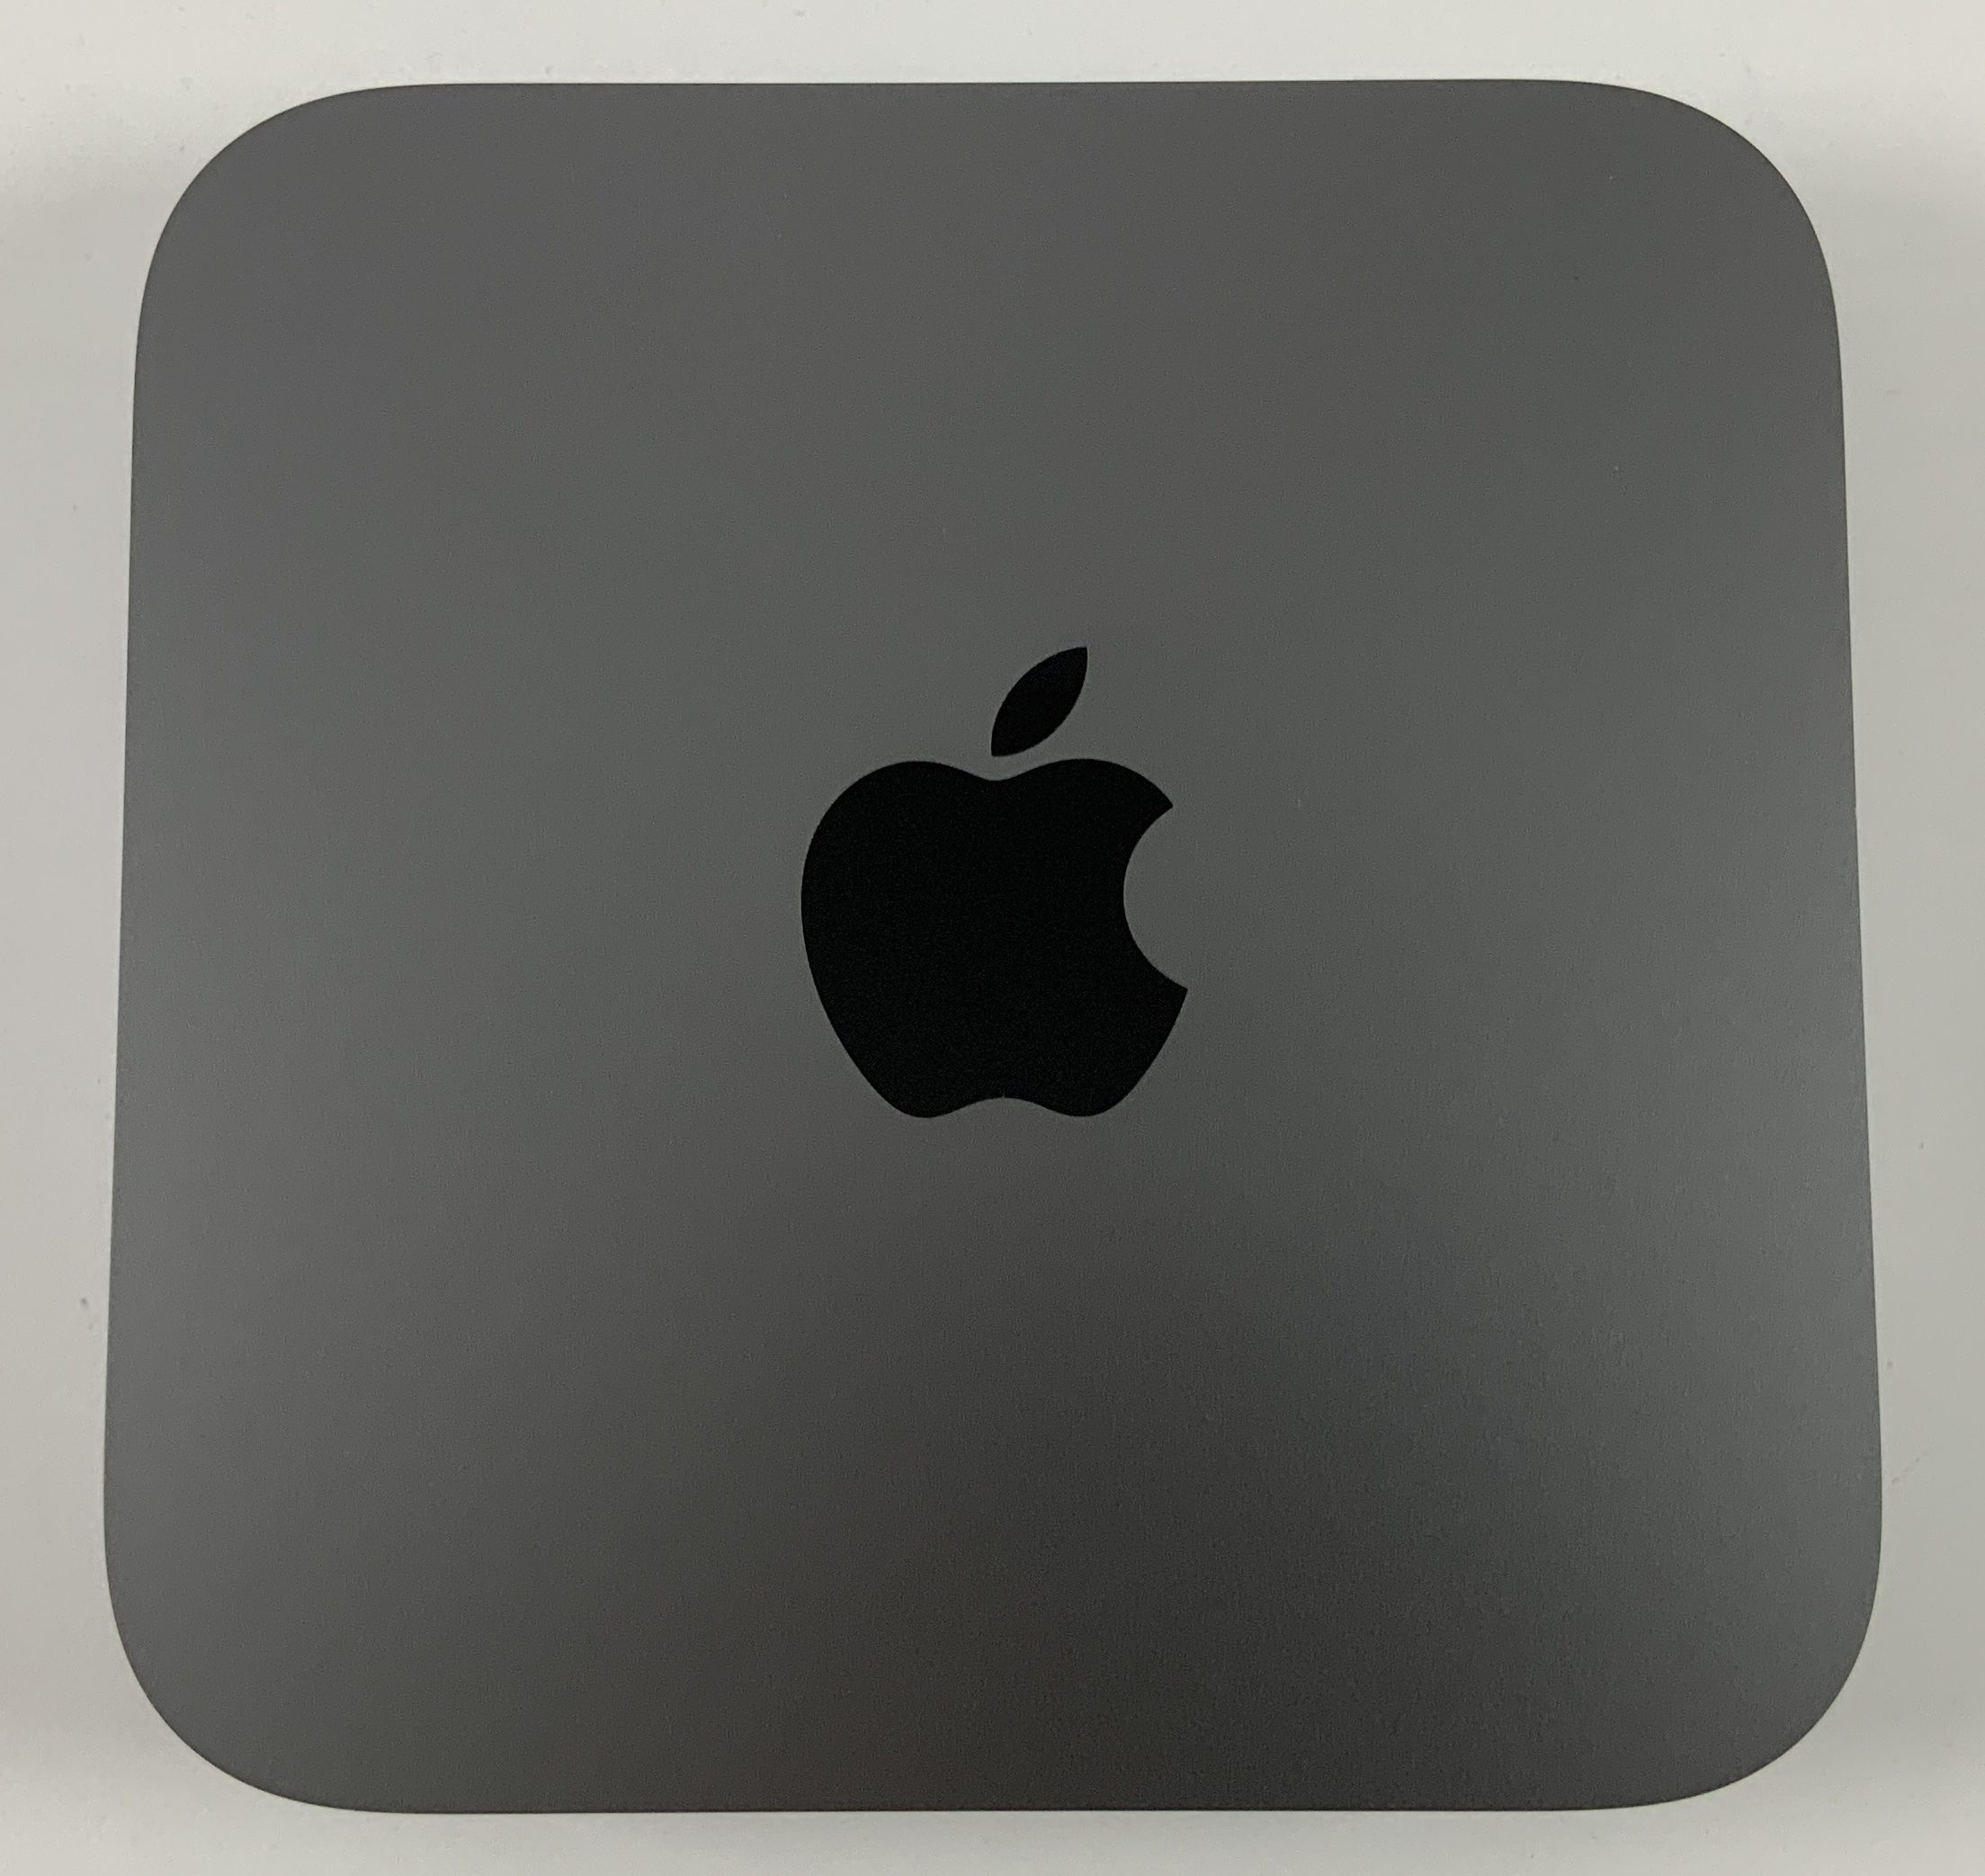 Mac Mini Late 2018 (Intel 6-Core i5 3.0 GHz 32 GB RAM 256 GB SSD), Intel 6-Core i5 3.0 GHz, 32 GB RAM, 256 GB SSD, Kuva 2